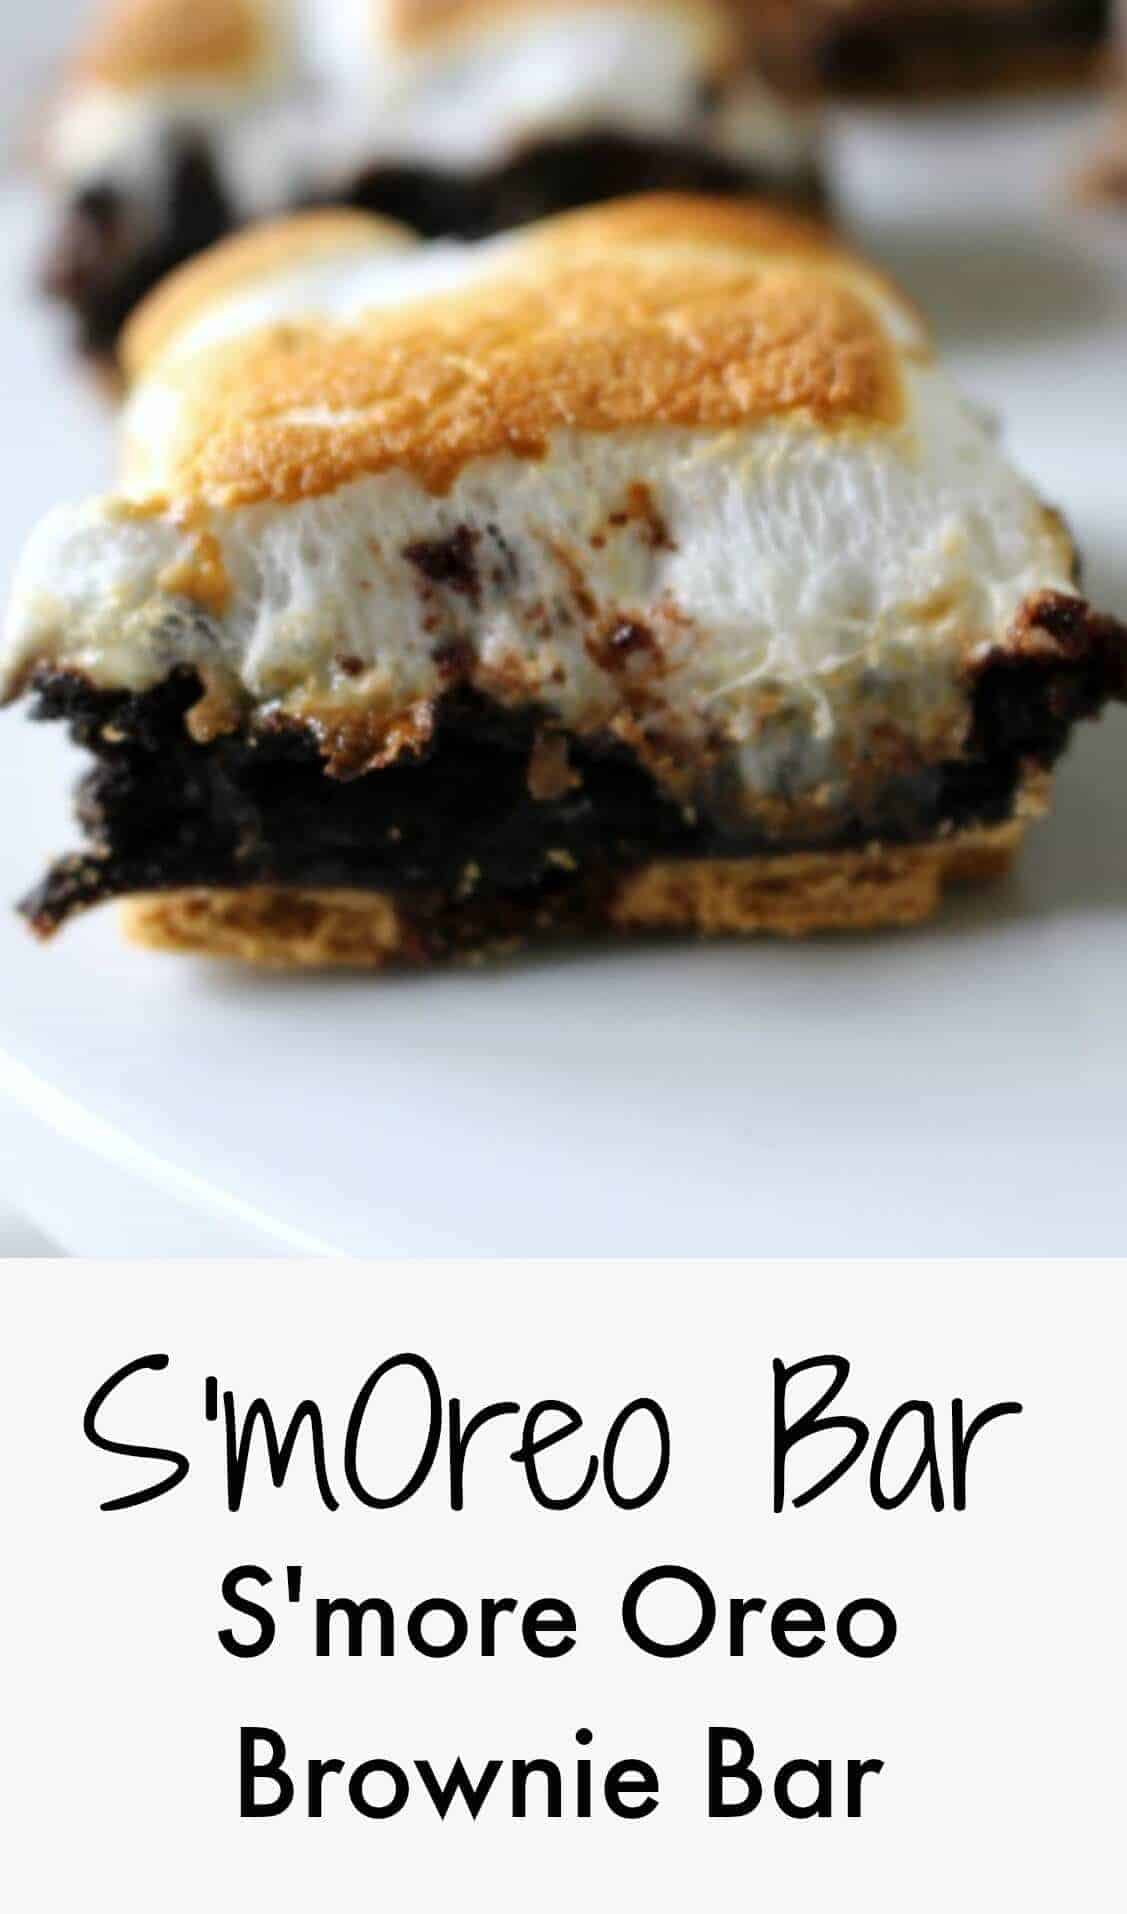 smore oreo brownie bar - SmOreo